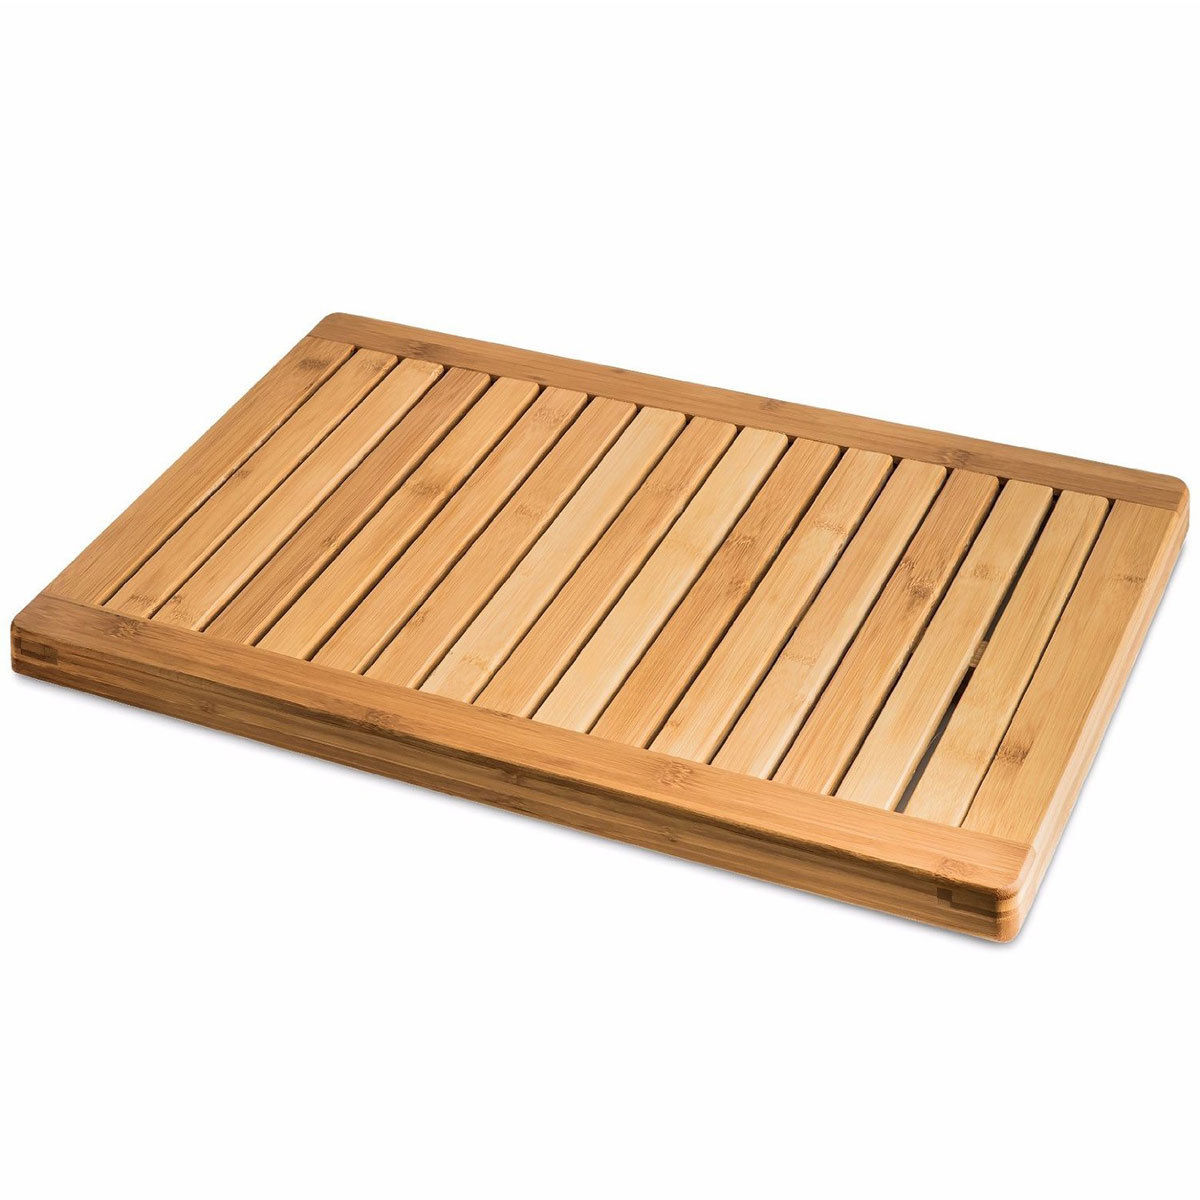 name mat productid bamboo floor shower vanities bathroom fujian detail floors products